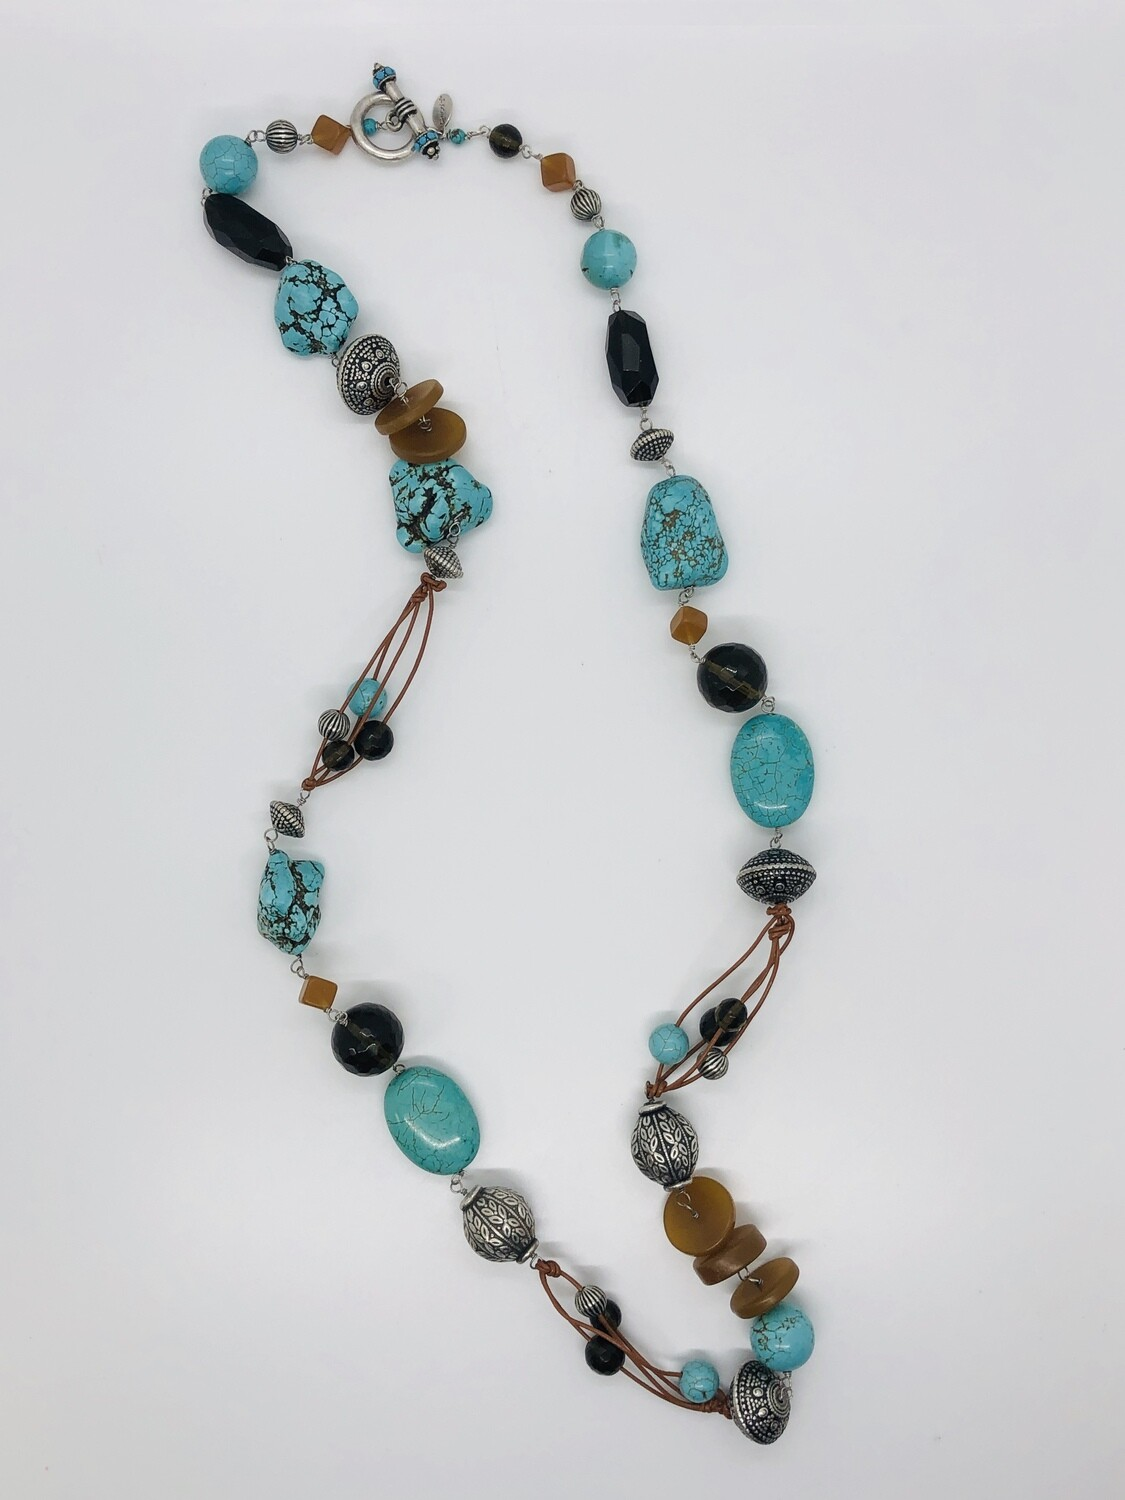 CHICO's Turquoise, Silver & Stone Beaded Long Toggle Necklace